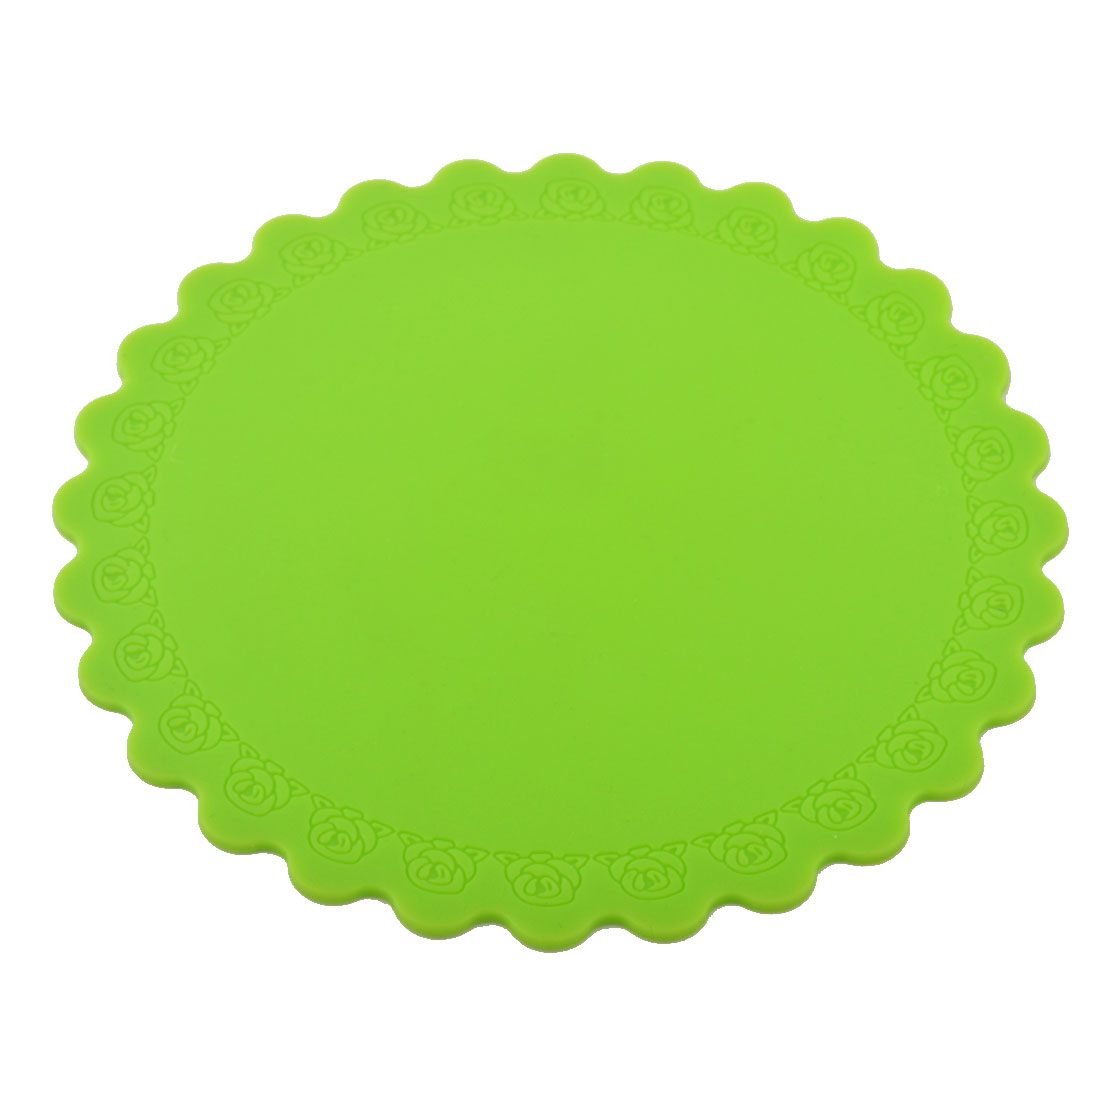 Silicone Rose Carven Table Heat Resistant Mat Cup Coaster Cushion Placemat Pad Green